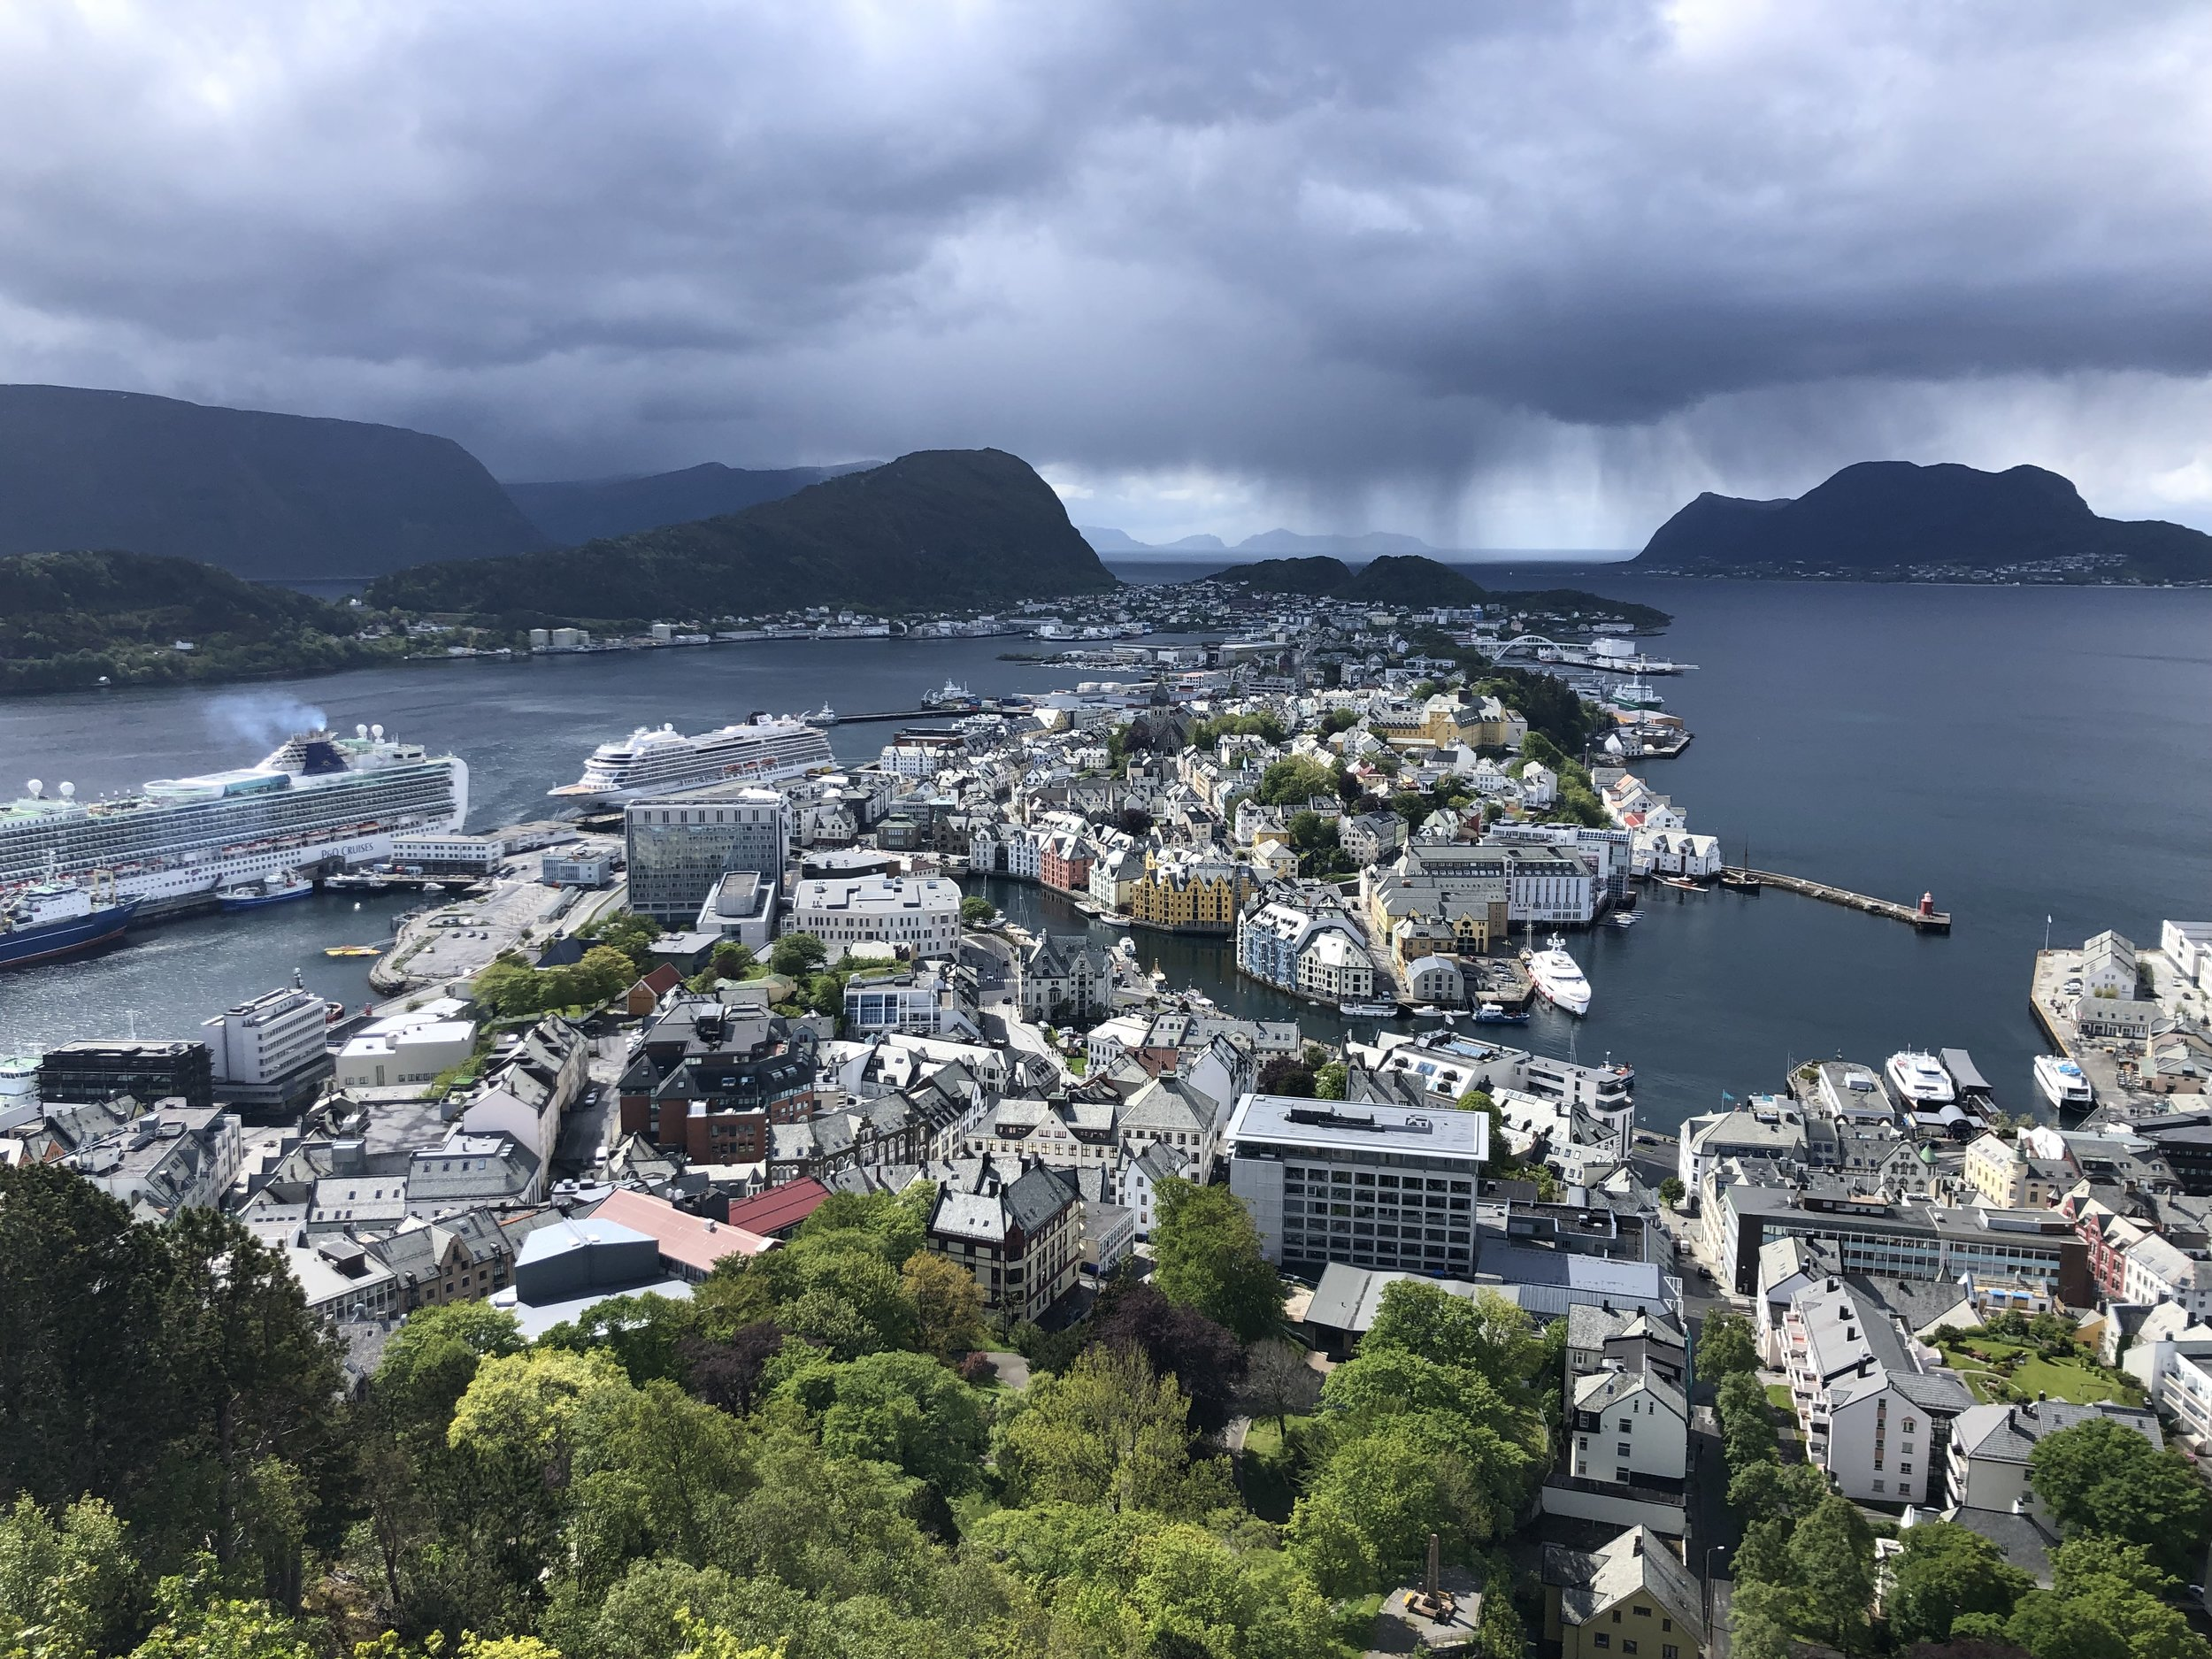 This photo was taken from the hill overlooking Alesund, where the ferry dropped us off.